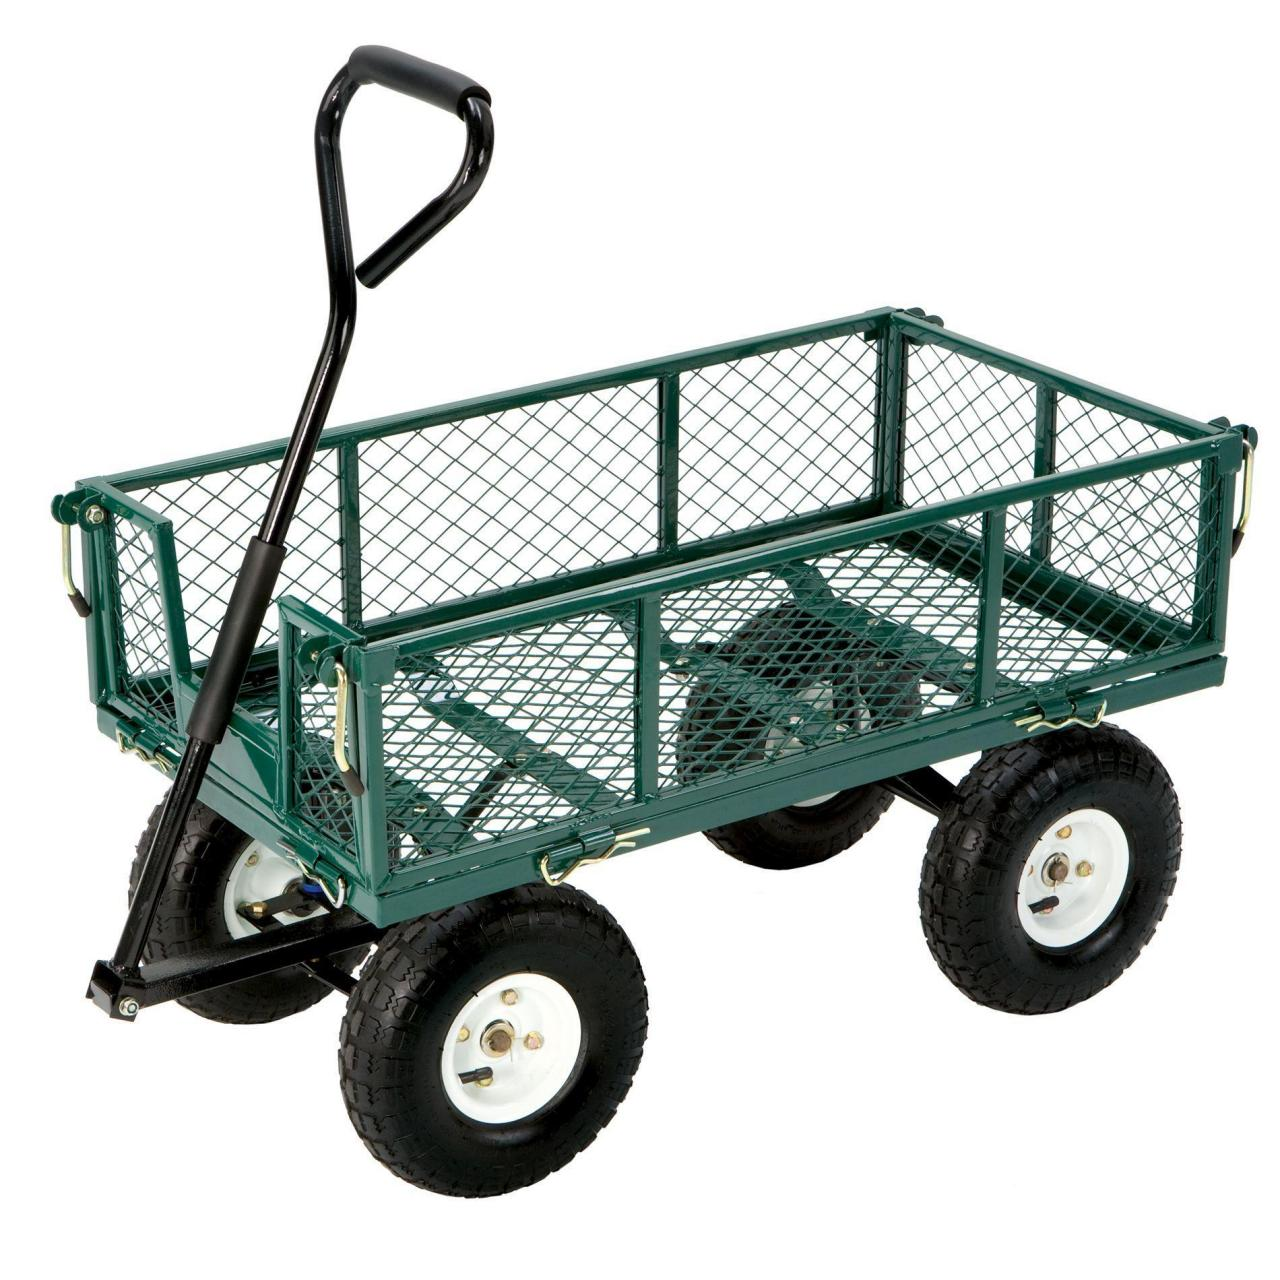 China Garden Cart Hot sale manufacture suppliers TC1851 Garden cart on sale